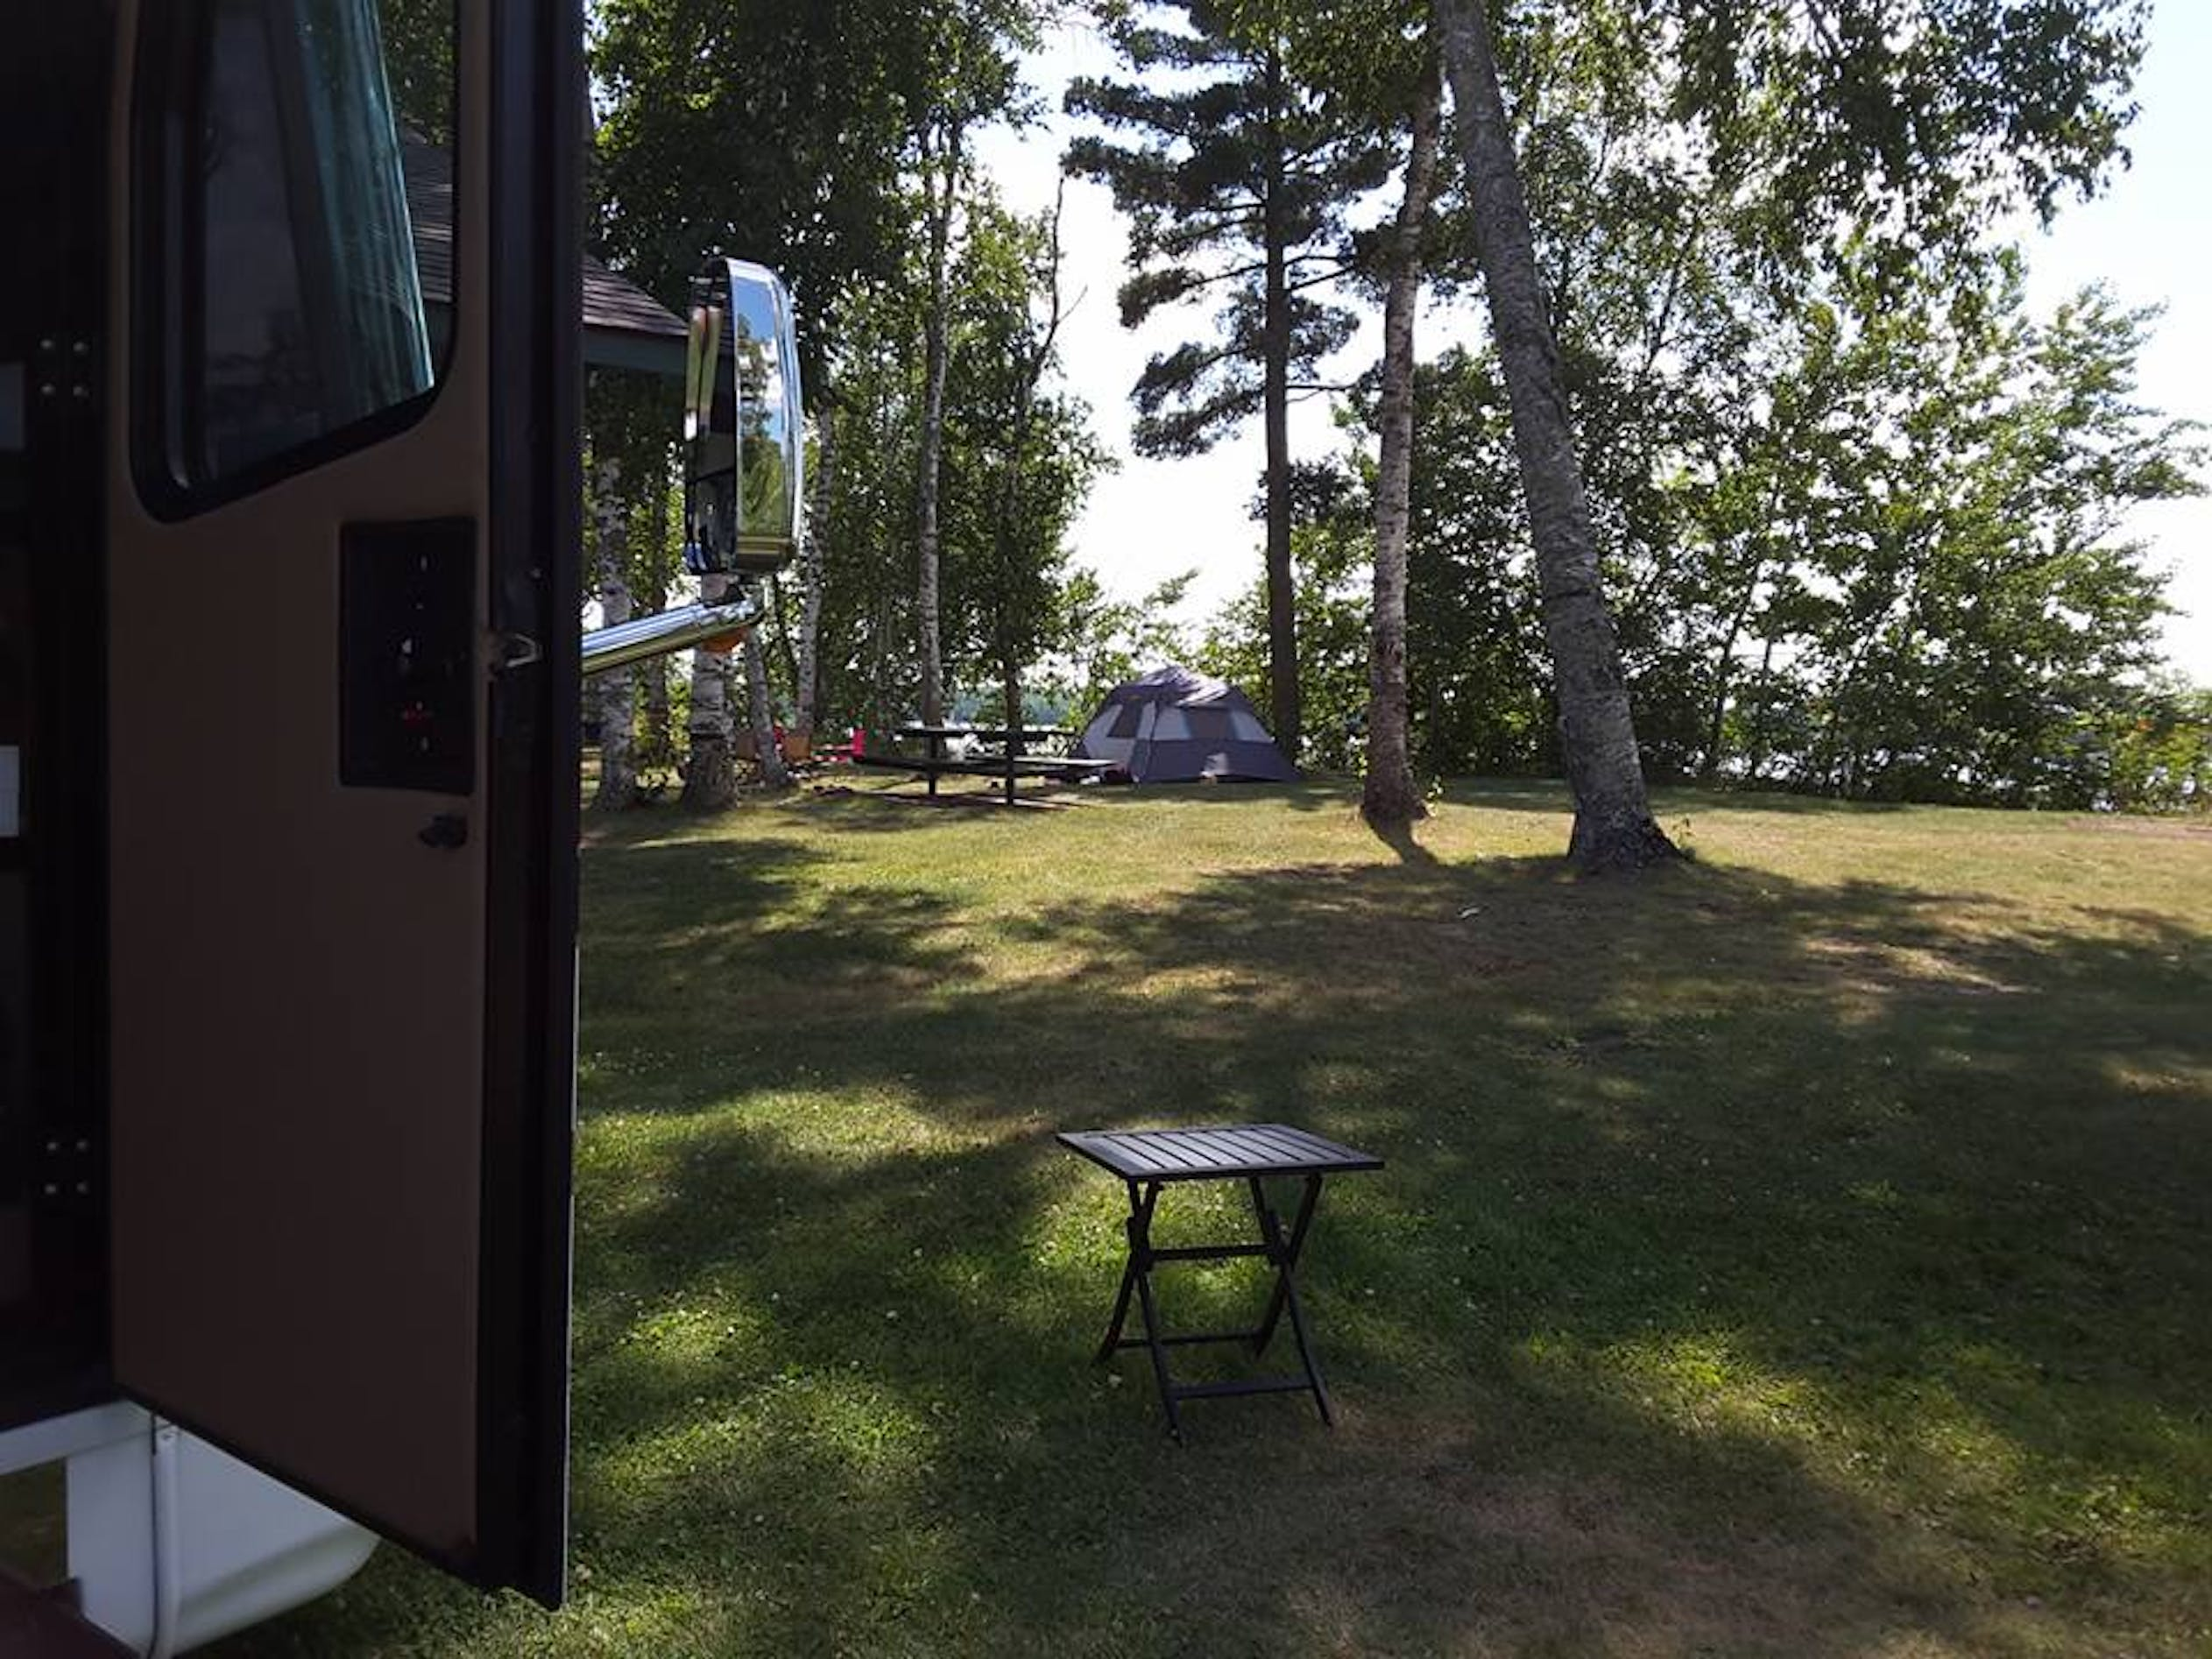 Photo Of Trout Lake Rv Park And Campground By Nancy W